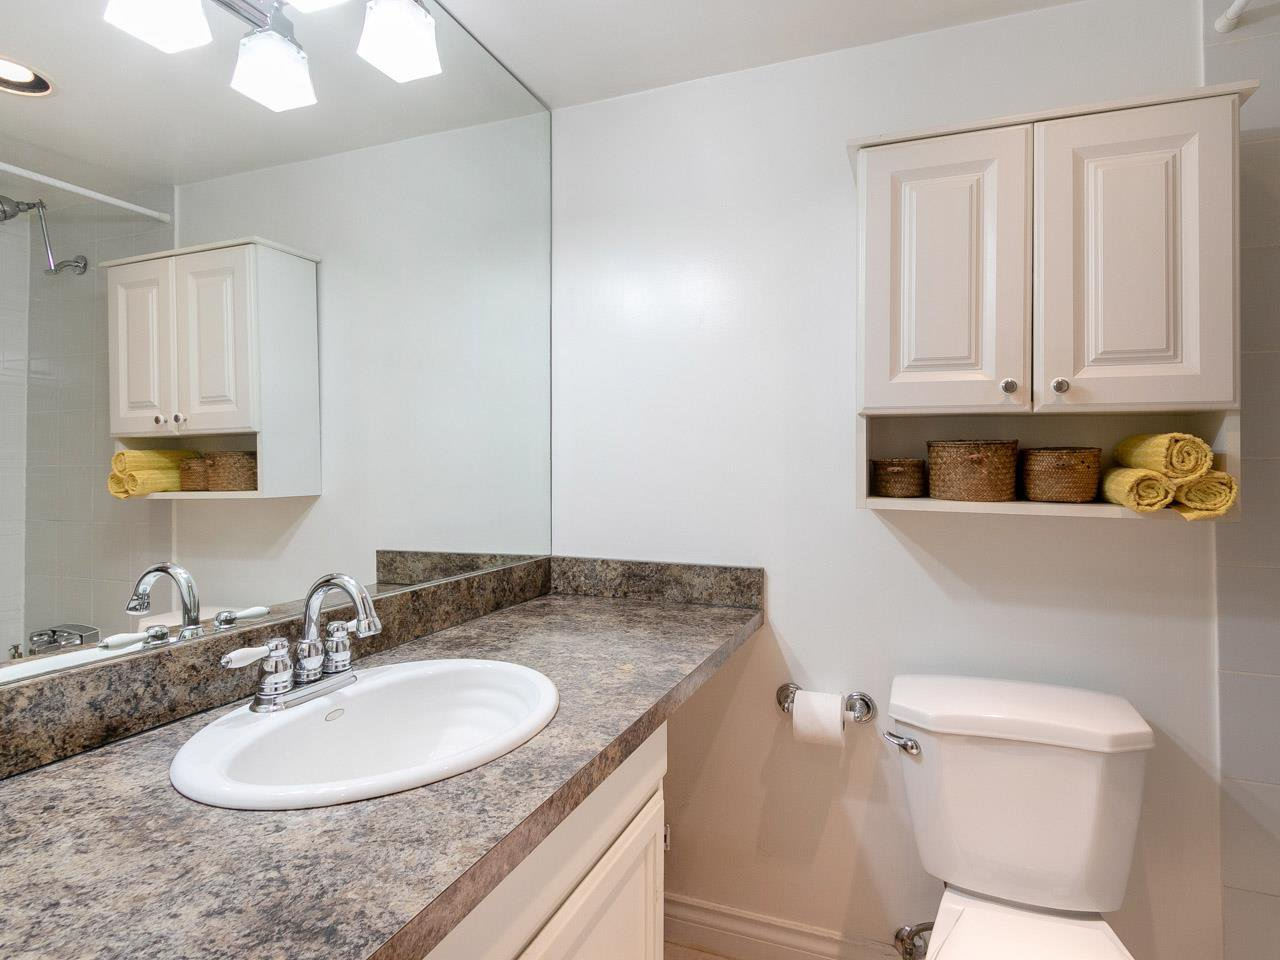 """Photo 10: Photos: 104 1516 CHARLES Street in Vancouver: Grandview VE Condo for sale in """"GARDEN TERRACE"""" (Vancouver East)  : MLS®# R2295886"""